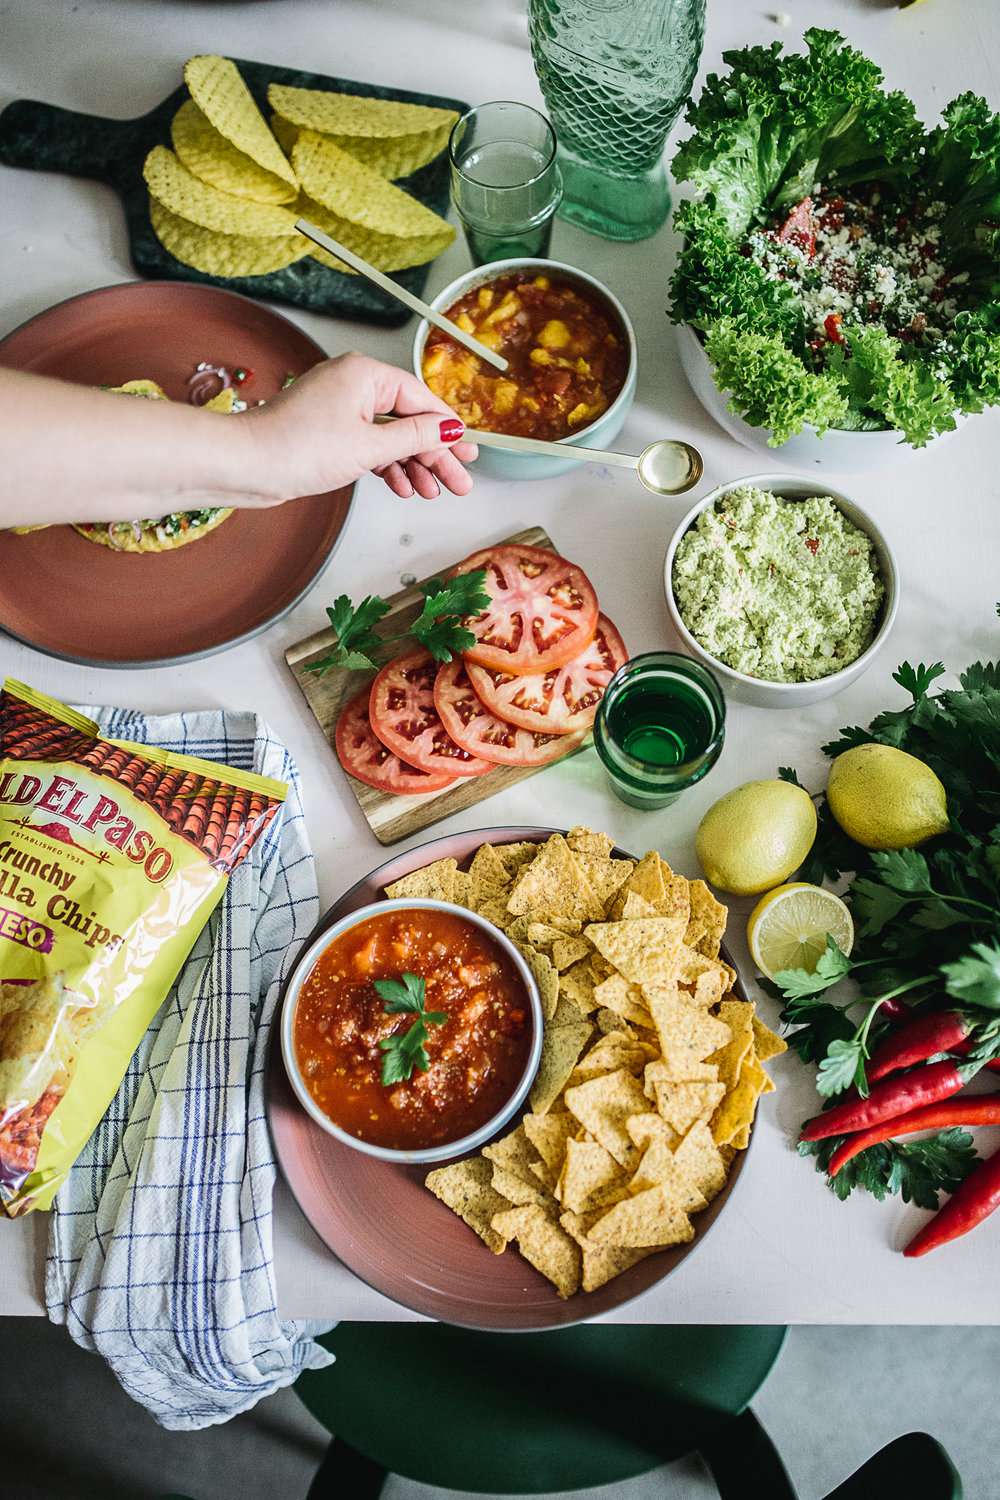 ¡Ándale! #mexicandinner mit Old El Paso